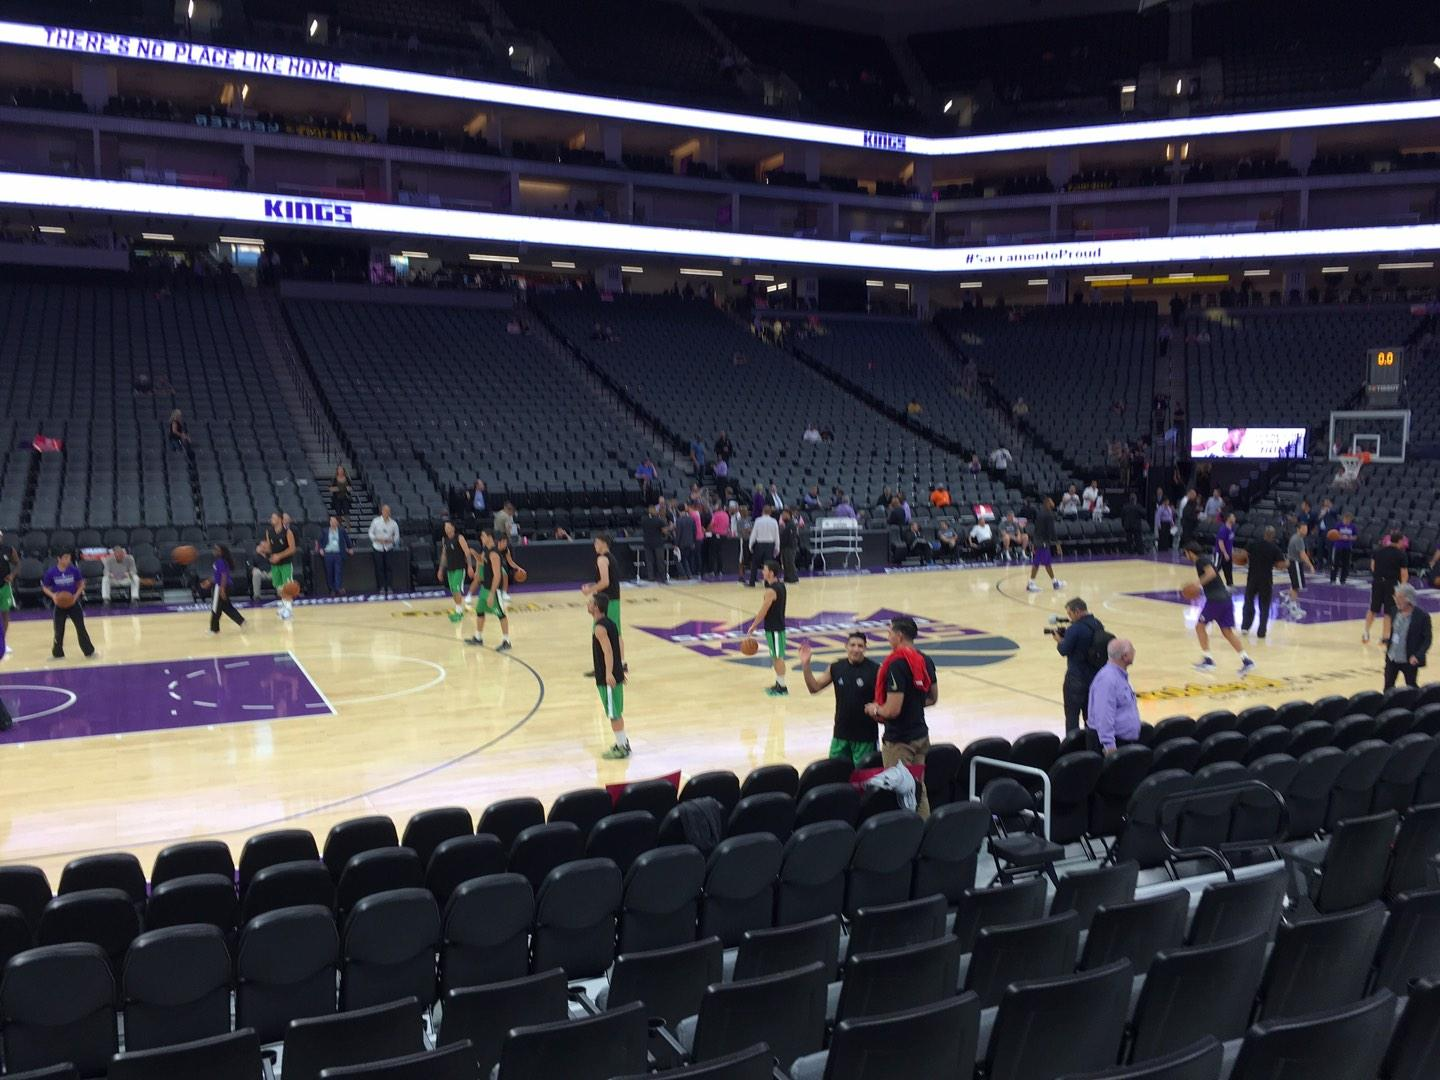 Golden 1 Center Secção 121 Fila Cc Lugar 9